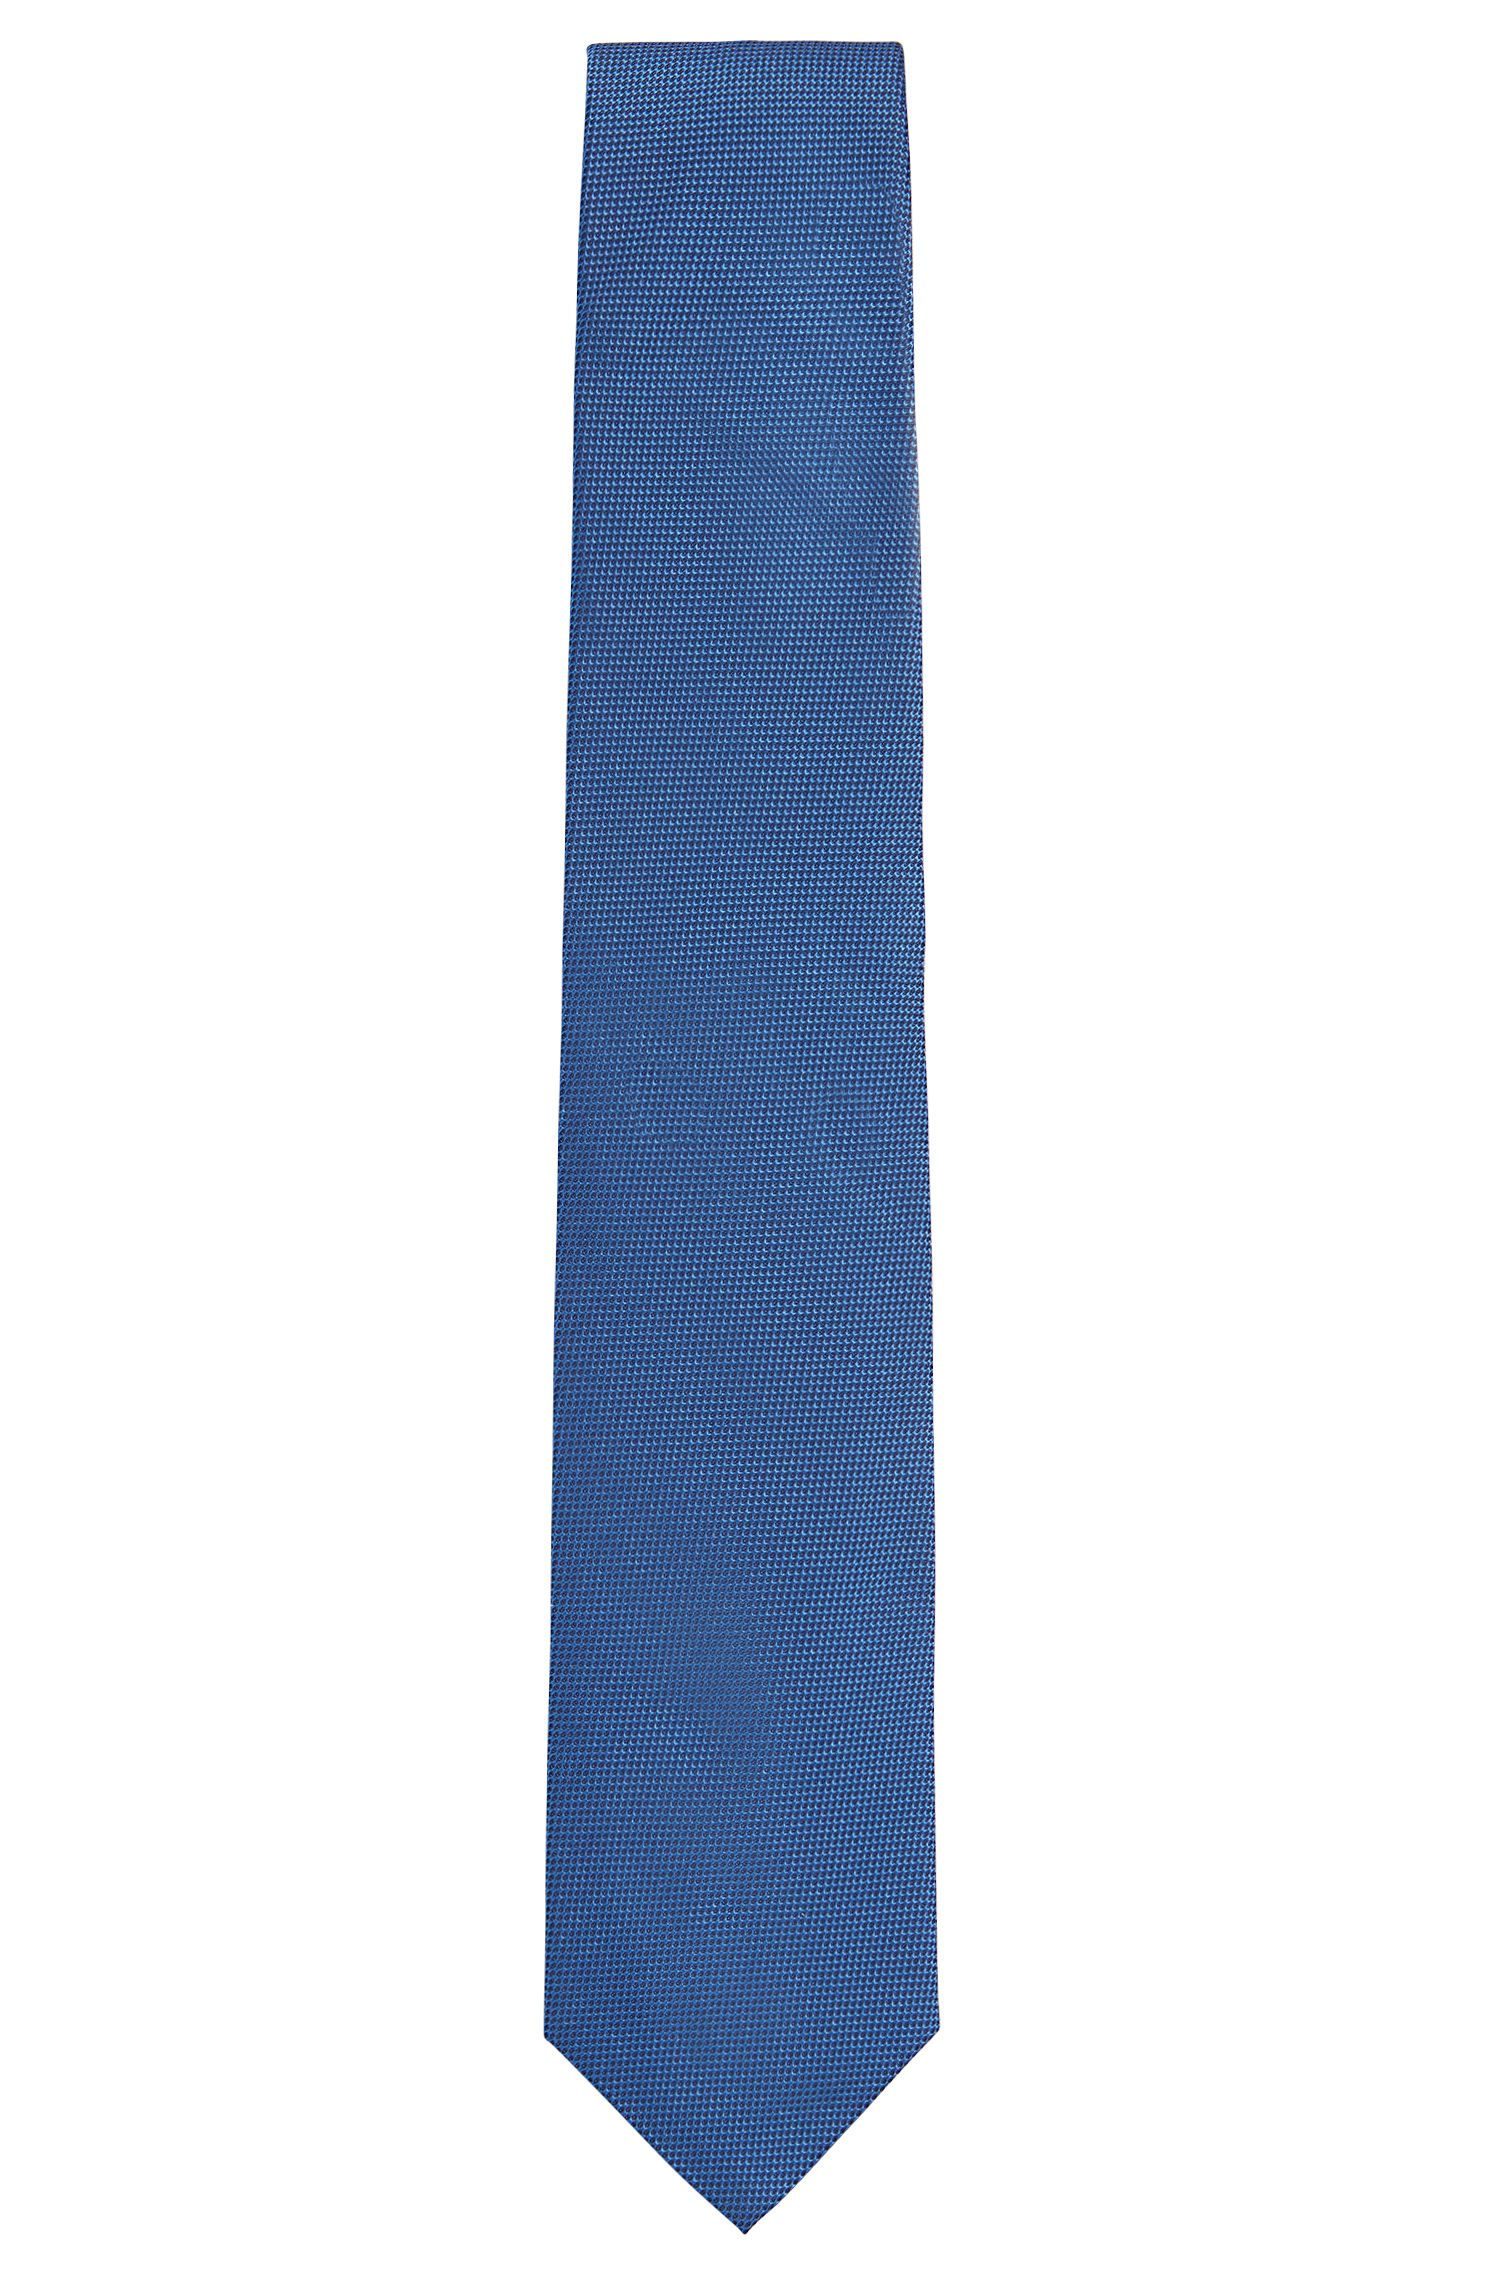 'Tie 7.5 cm' | Regular, Italian Silk Embroidered Tie